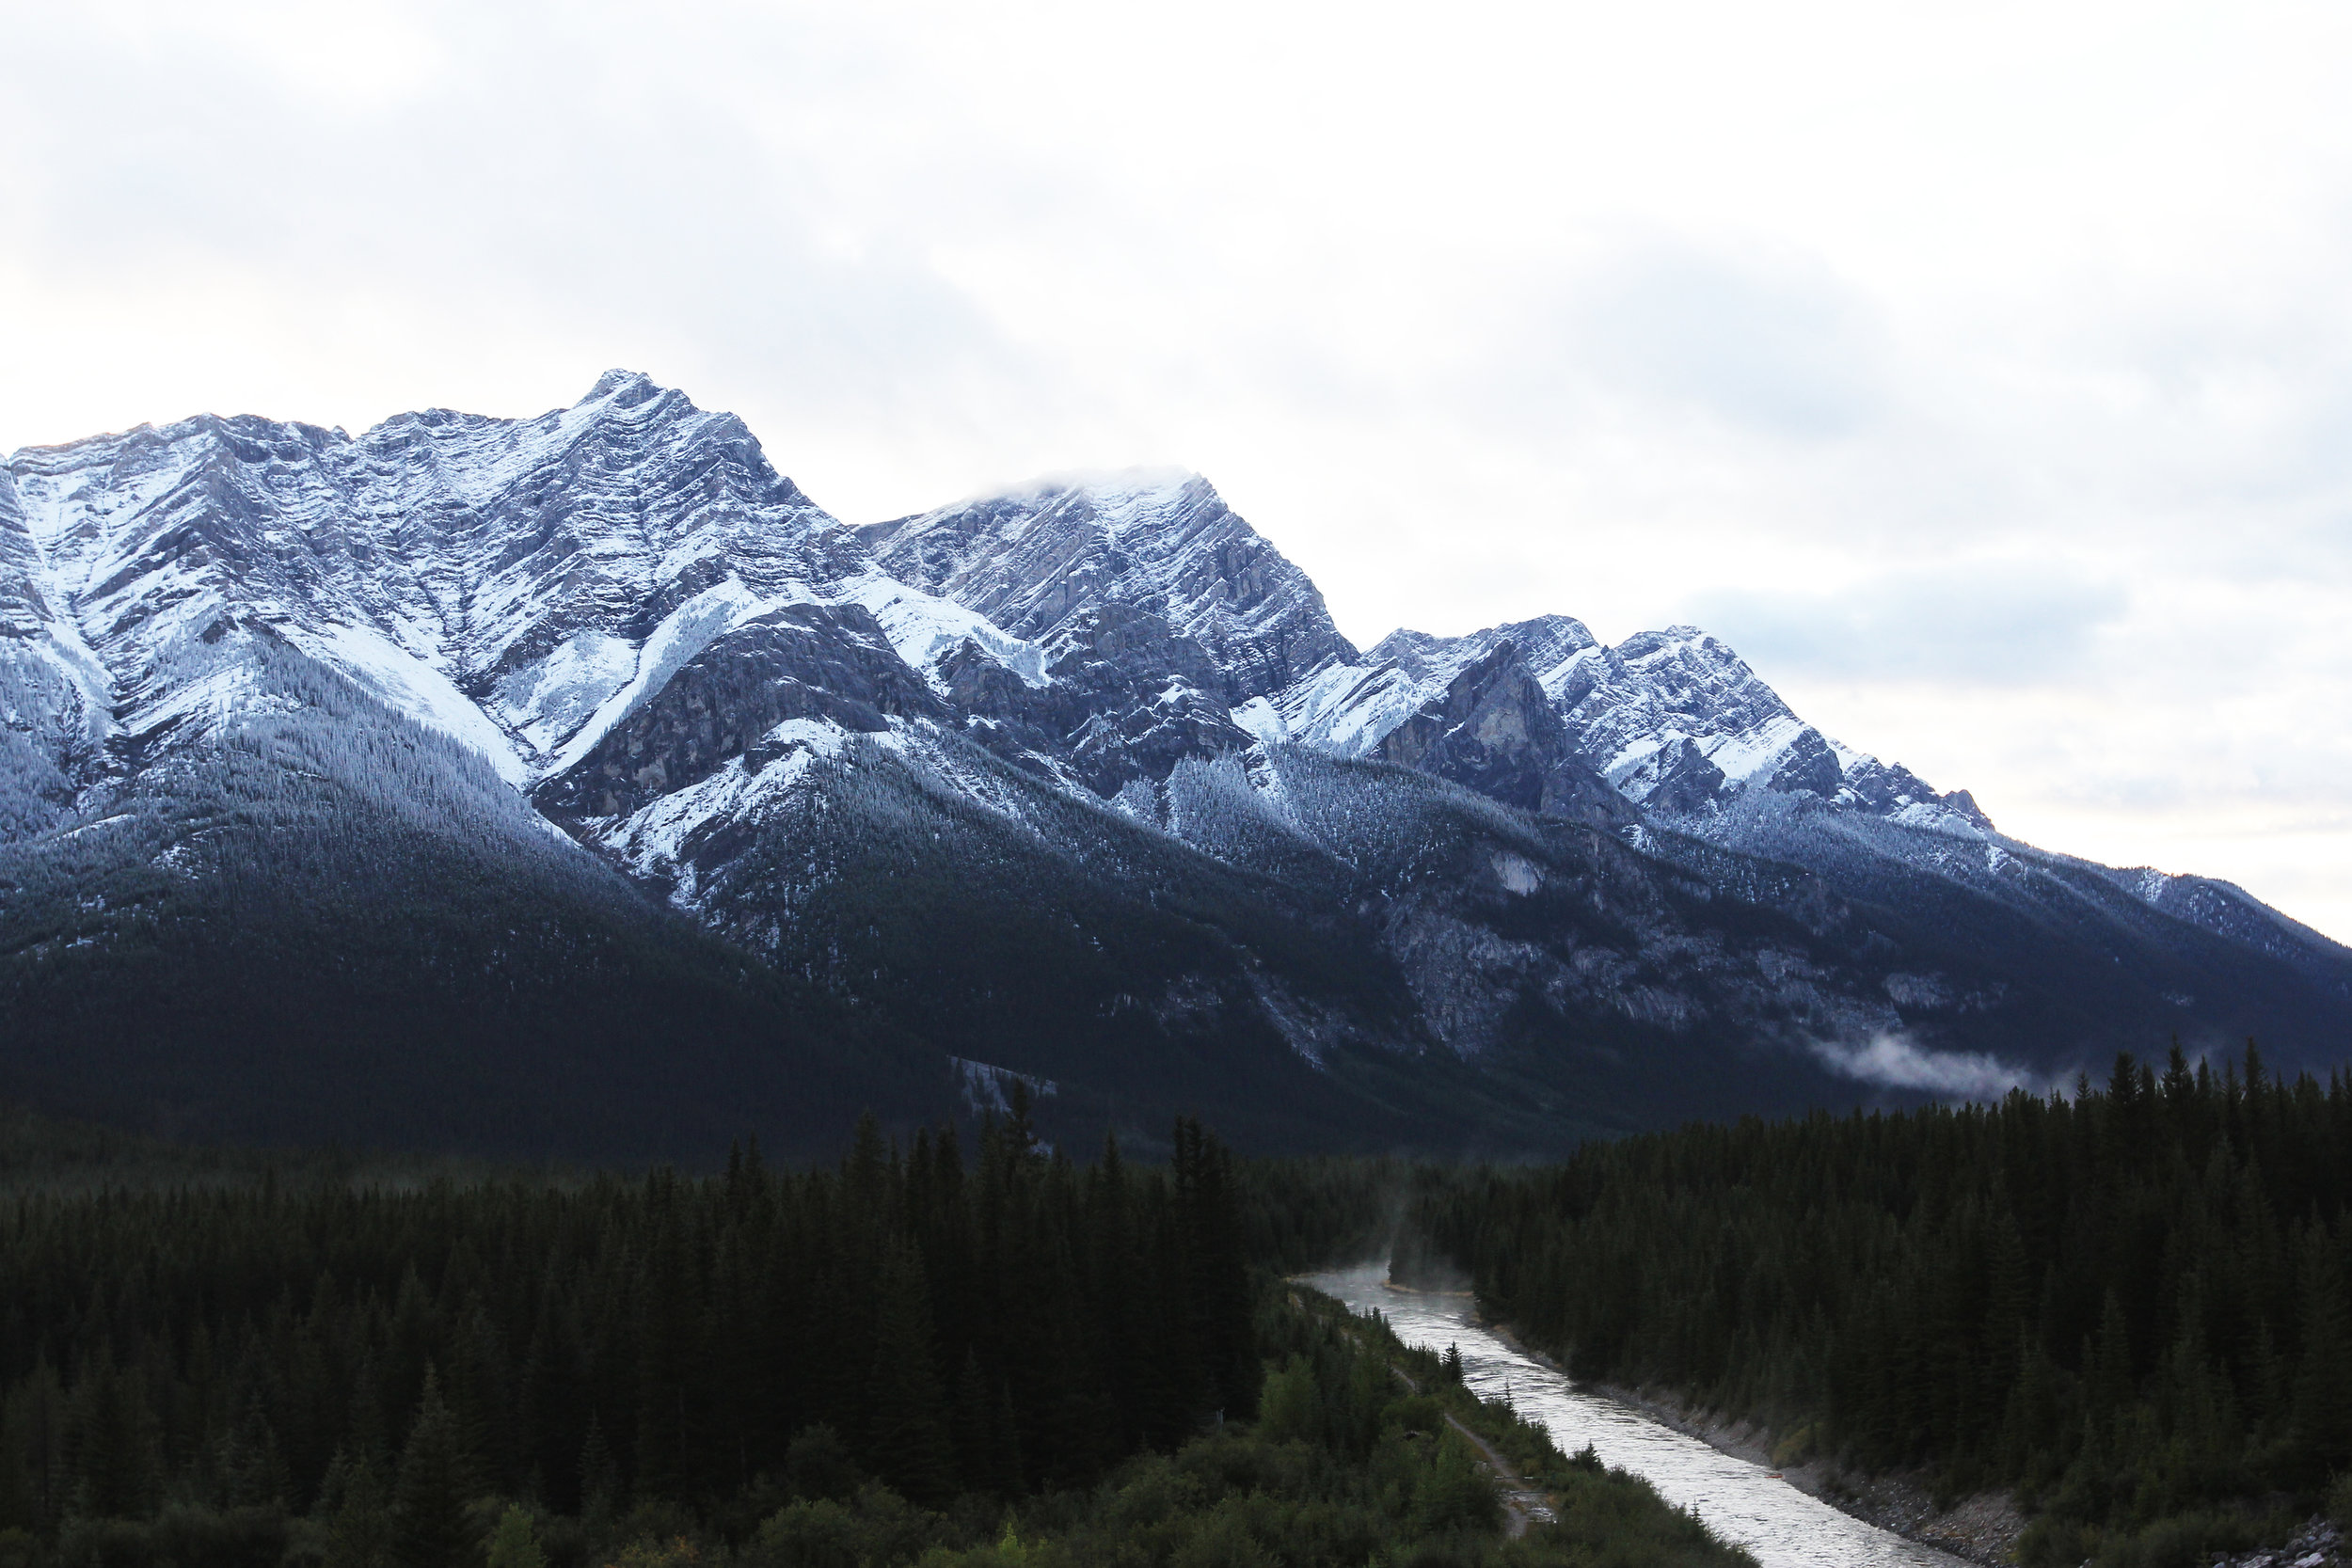 Ridge lines in Canadian Rockies (outside Canmore) appear vivid after recent snow fall | August 2015